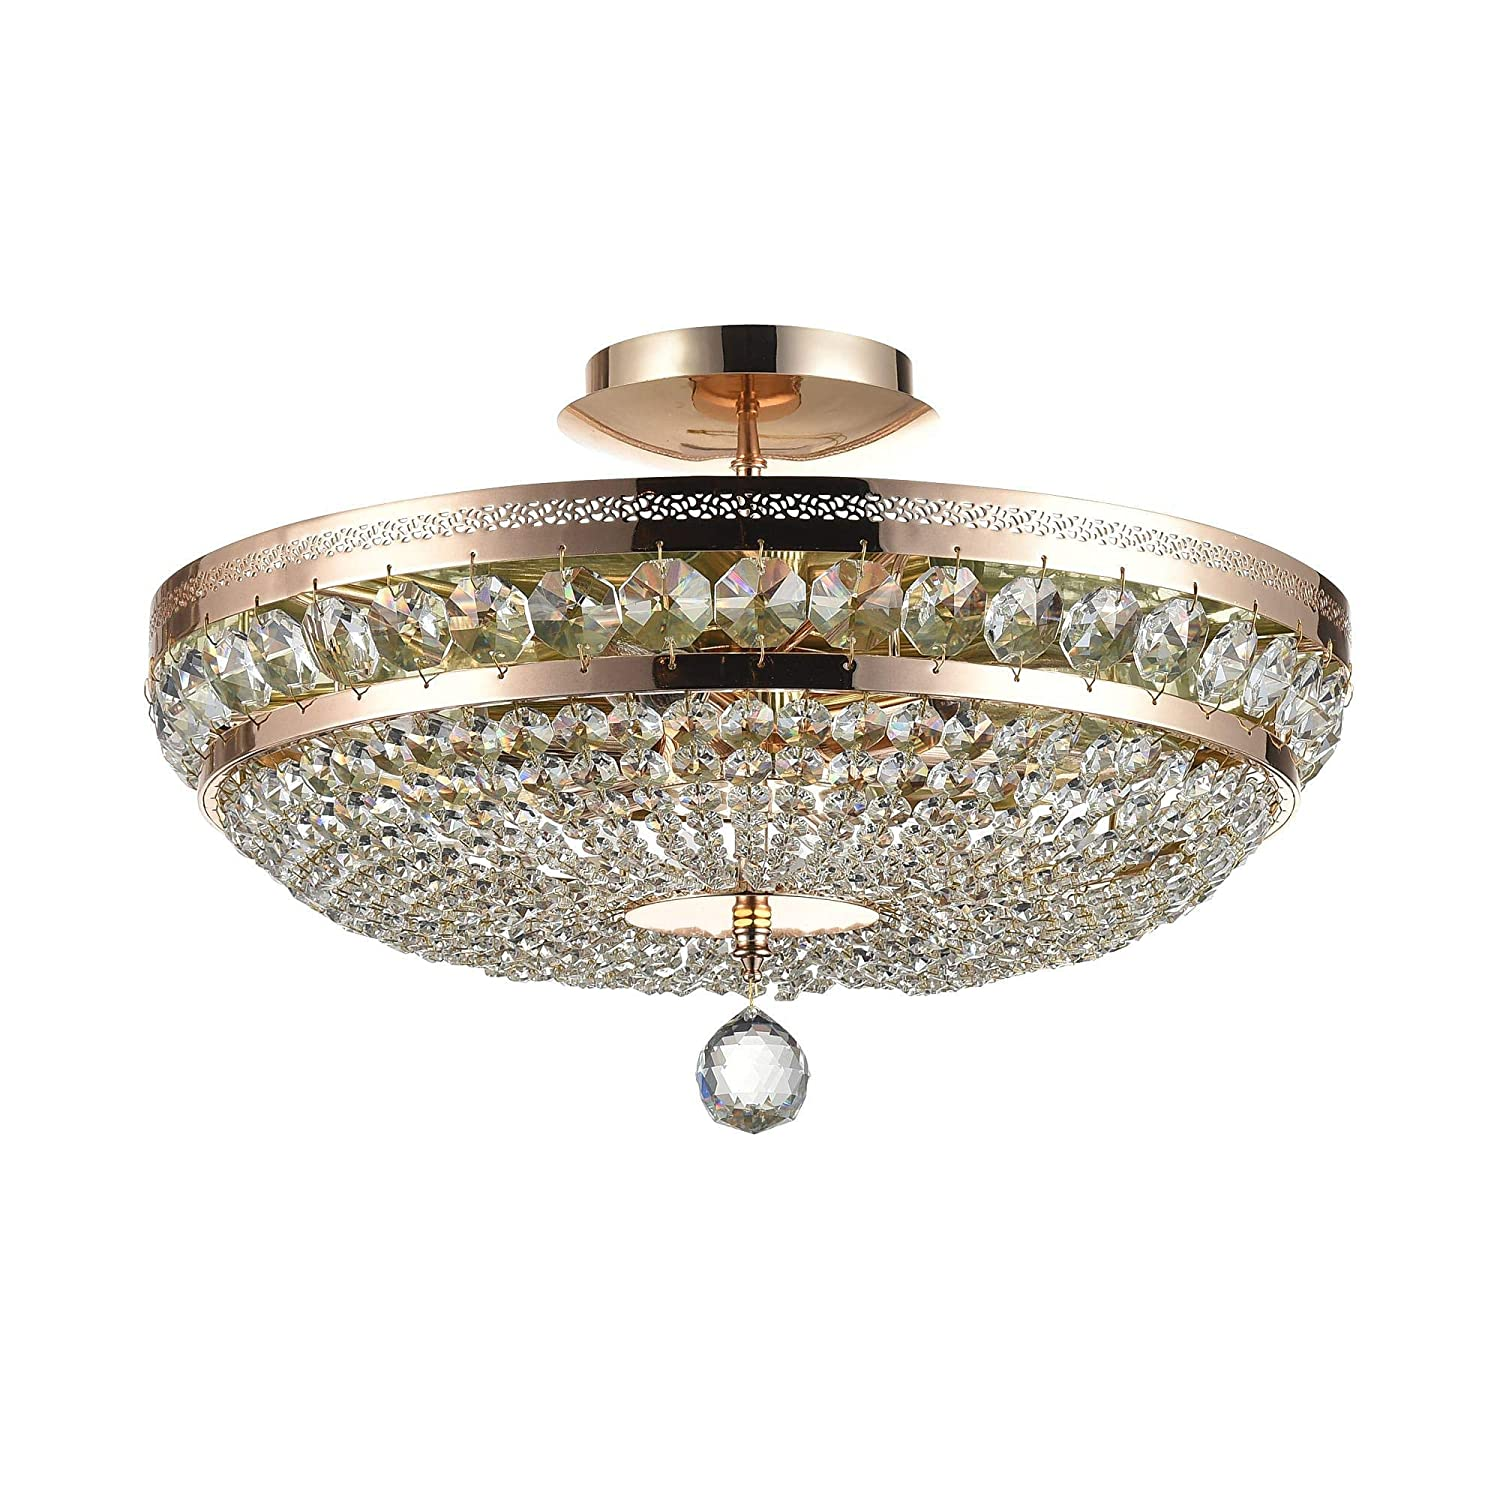 Lux style round crystal ceiling light golden metal colour cascade of clear crystals 6 bulbs excl e14 6x60w 220v energy class a